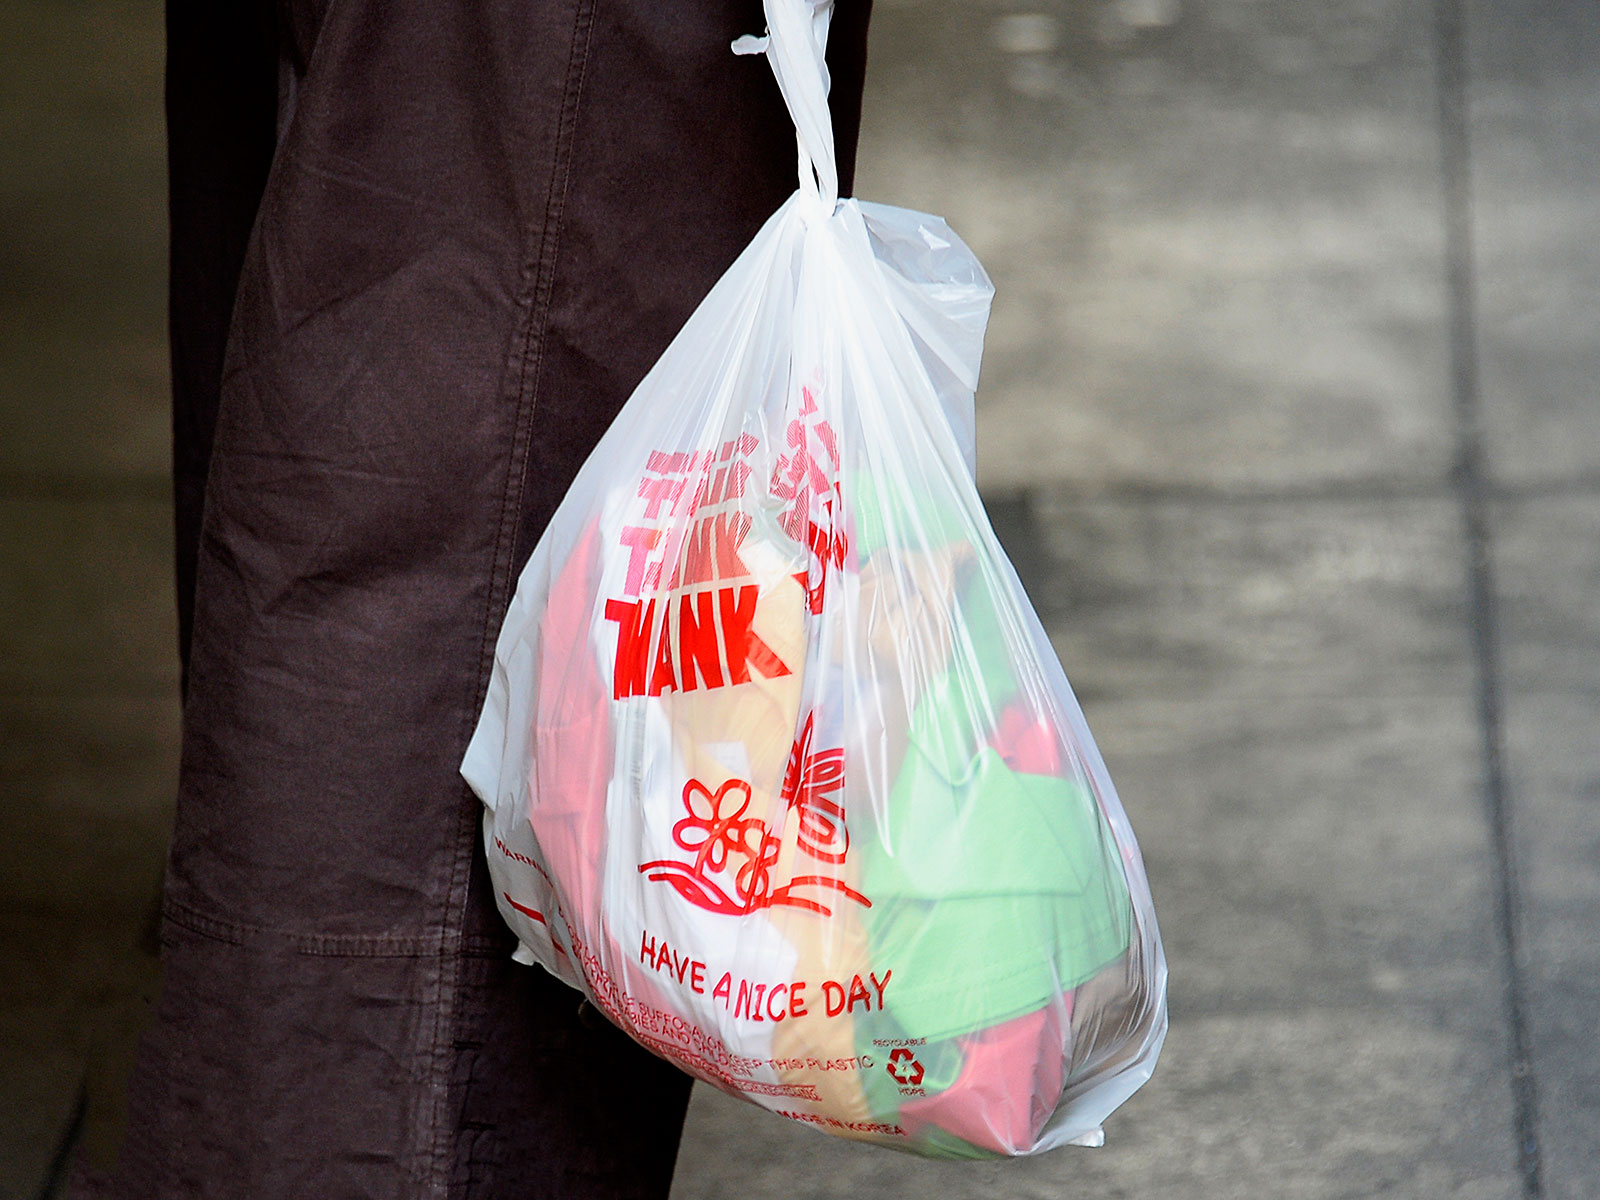 plastic bag ban in kenya